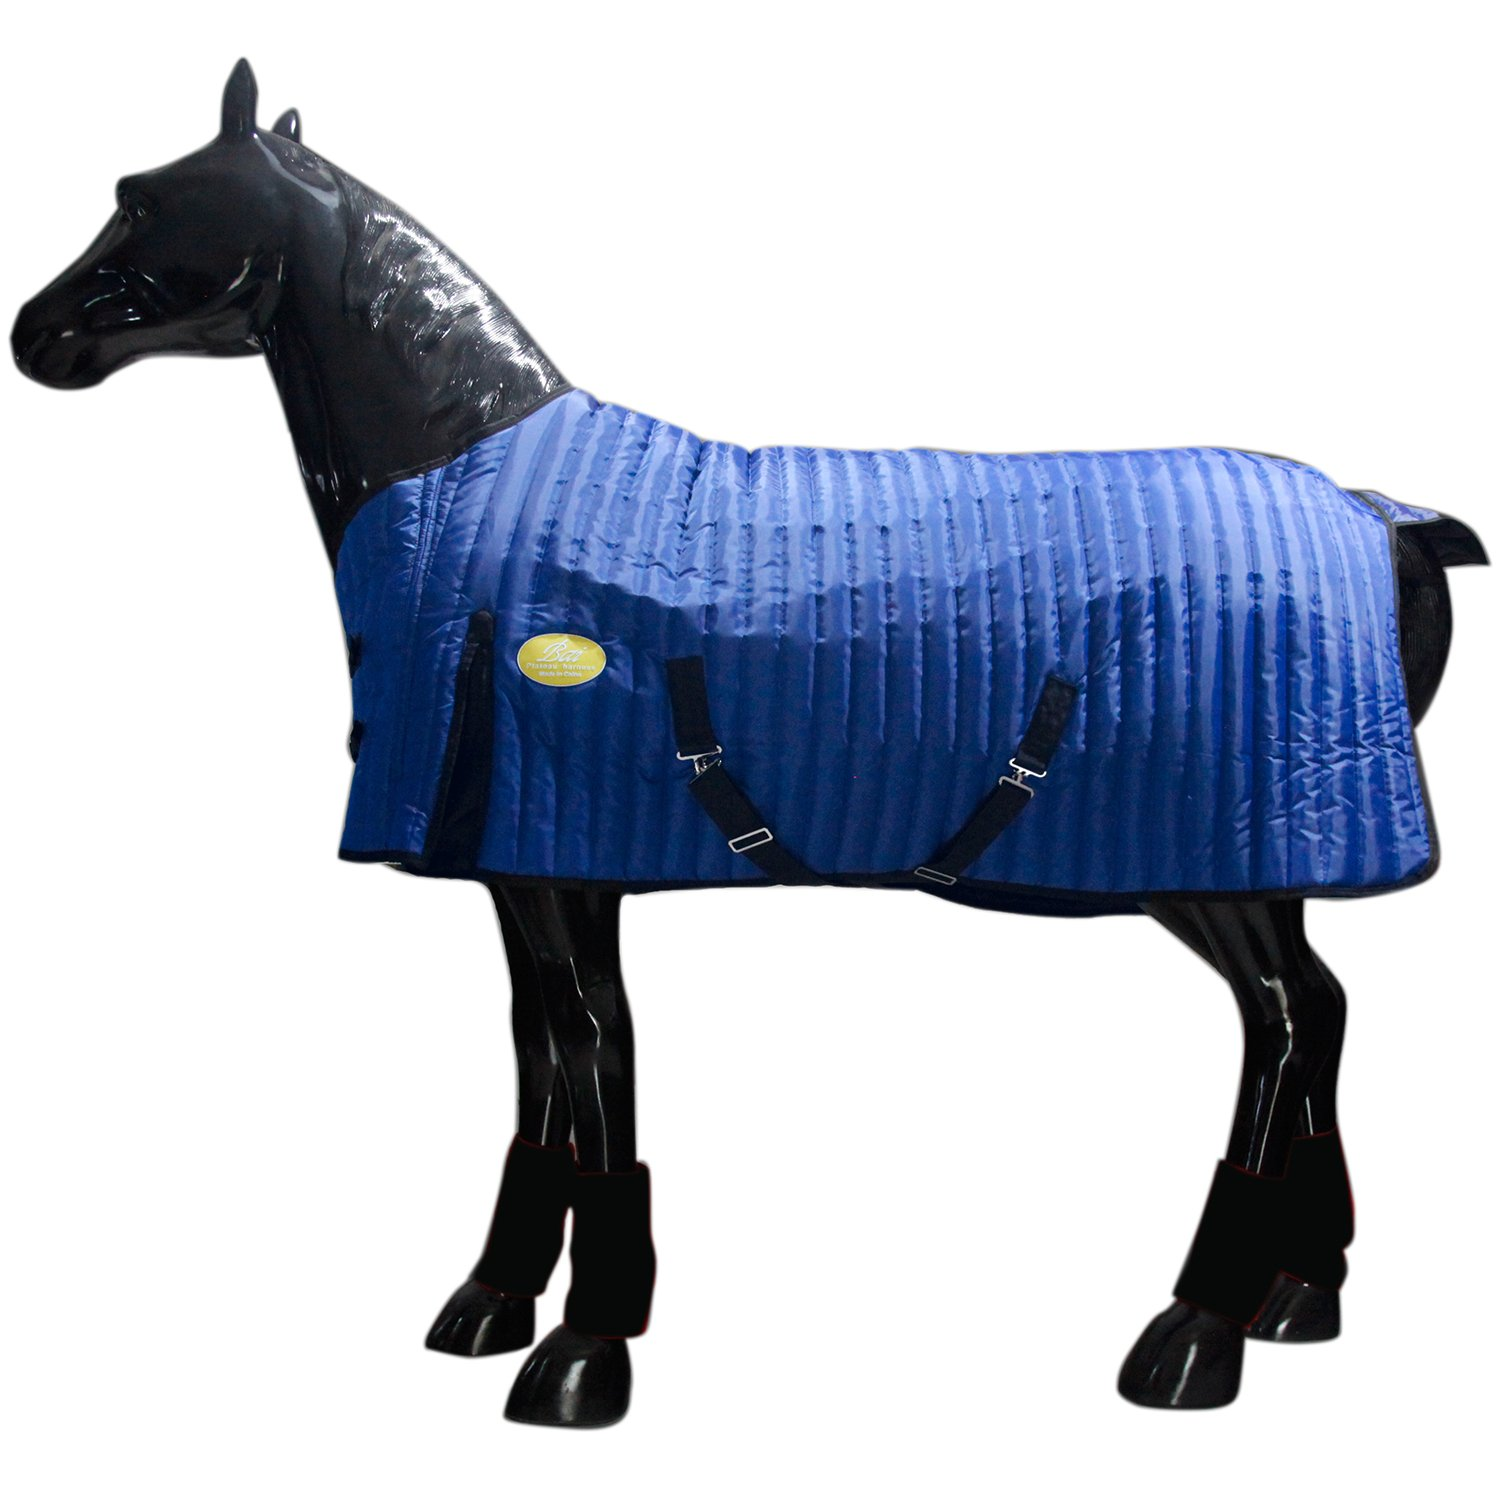 bluee 125cm bluee 125cm SportTent Comfitec Waterproof 400D Horsewear Warm Equestrian Cloth Horse Rug Winter 300g Cotton Padded Thick Breathable (125cm, bluee)